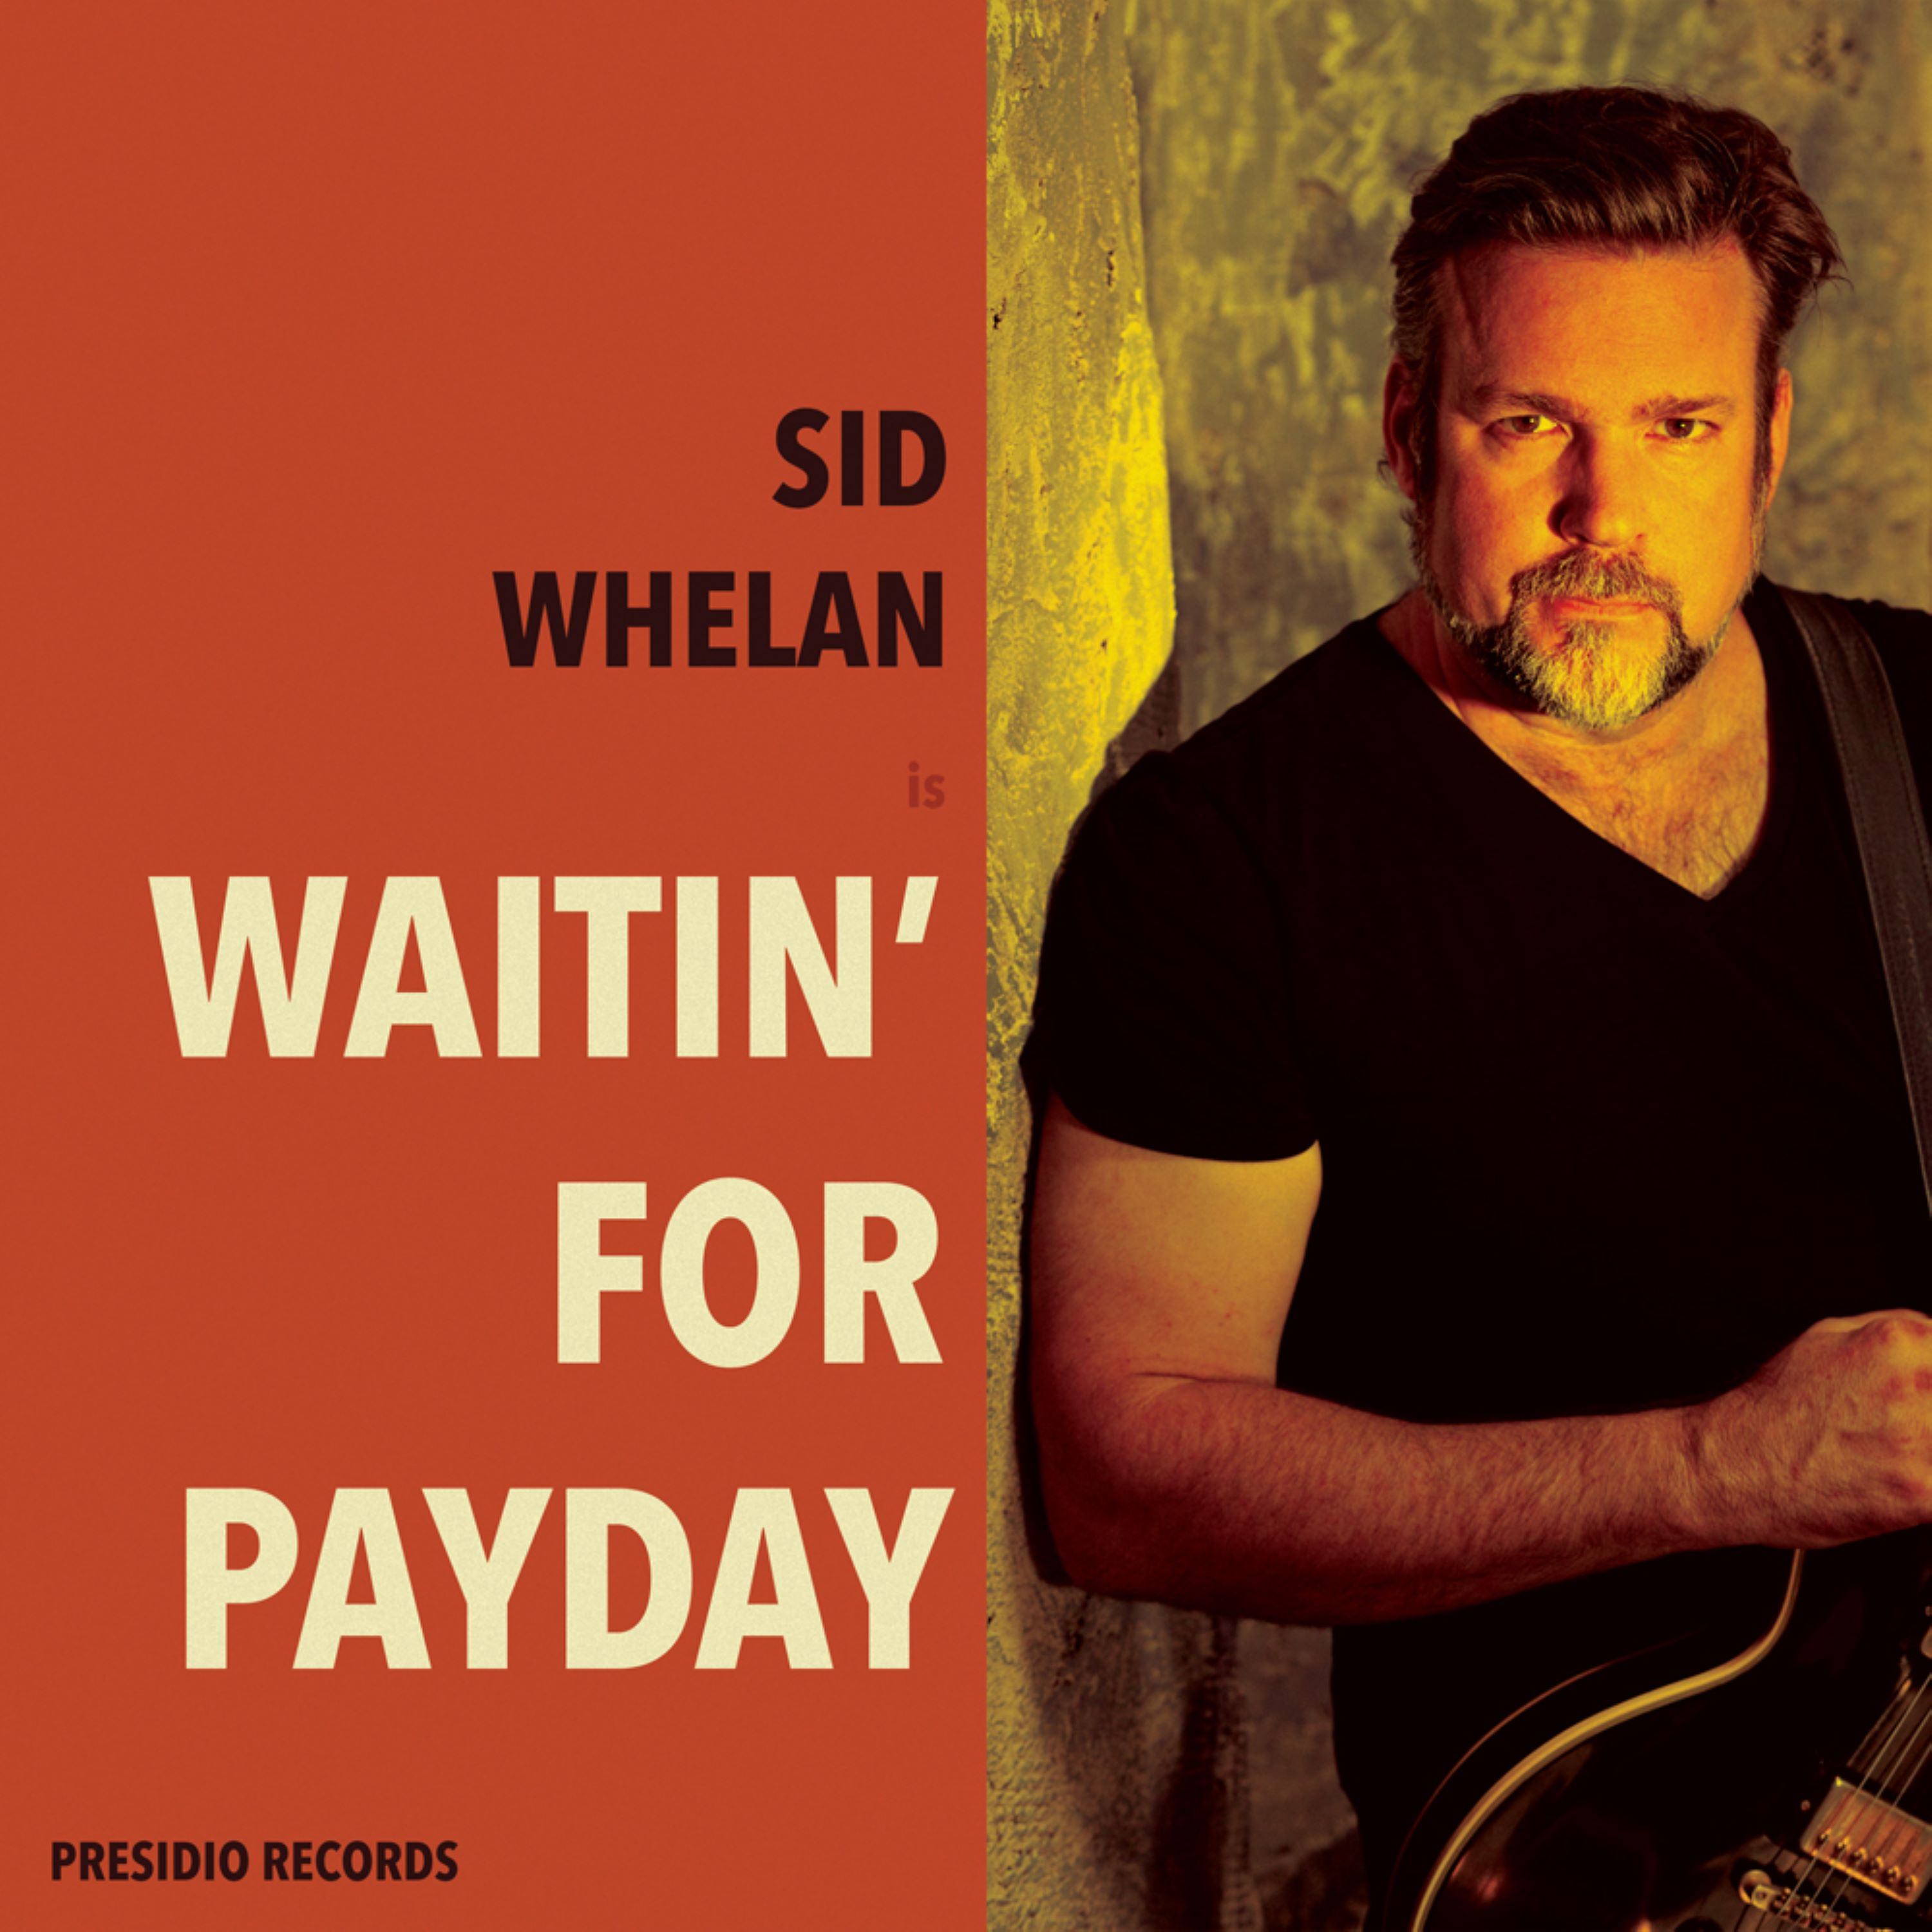 Waitin' for Payday https://store.cdbaby.com/cd/sidwhelan